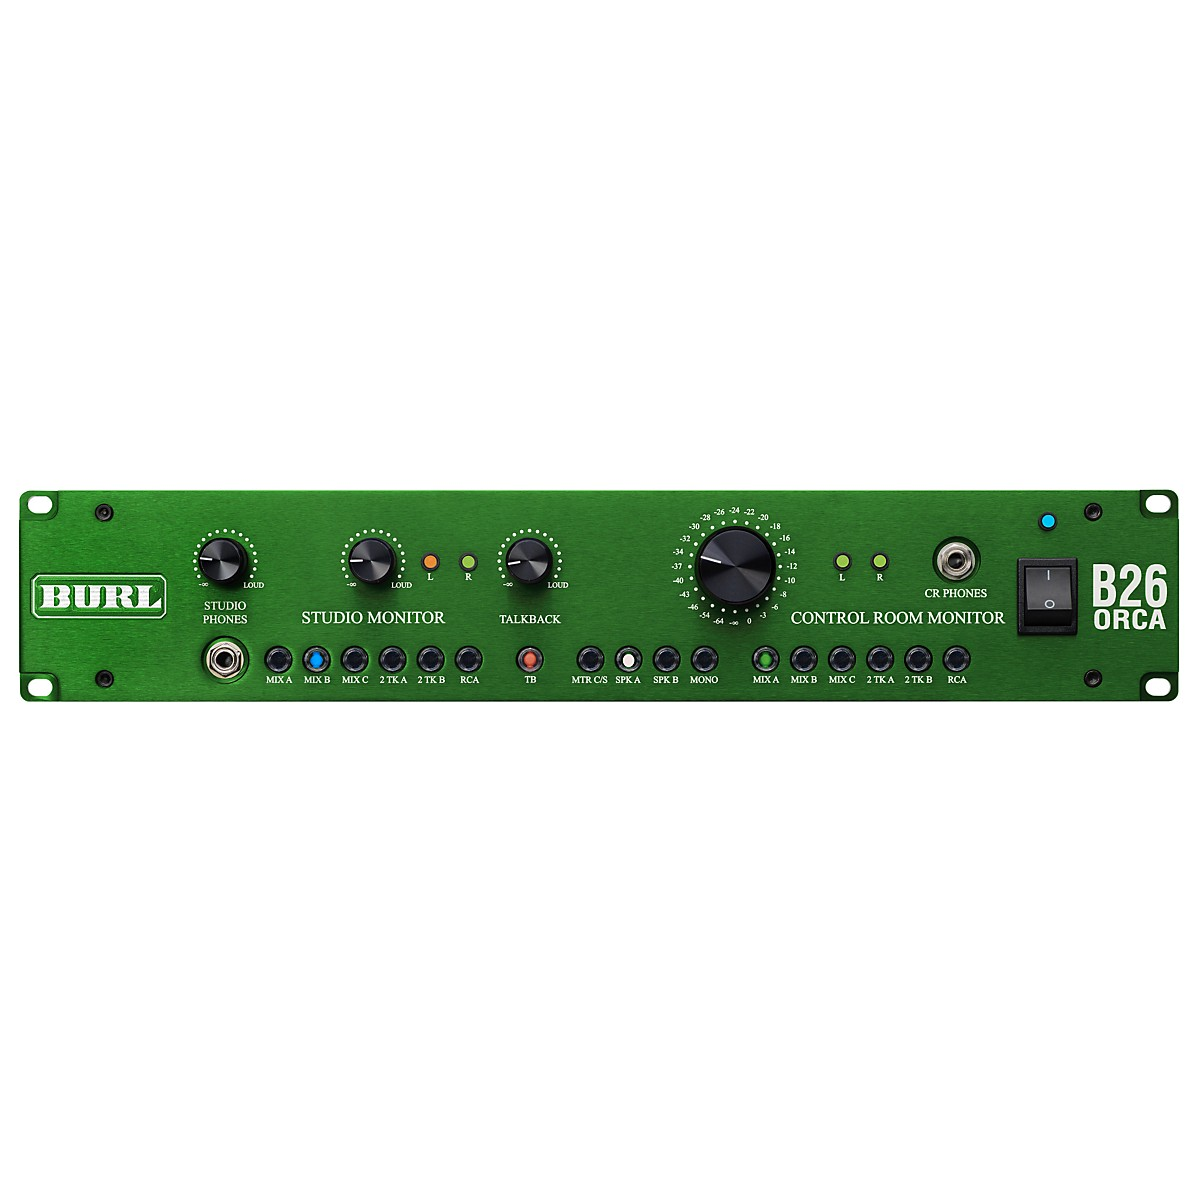 Burl Audio B26 Orca 6 Stereo Input Control Room Monitor